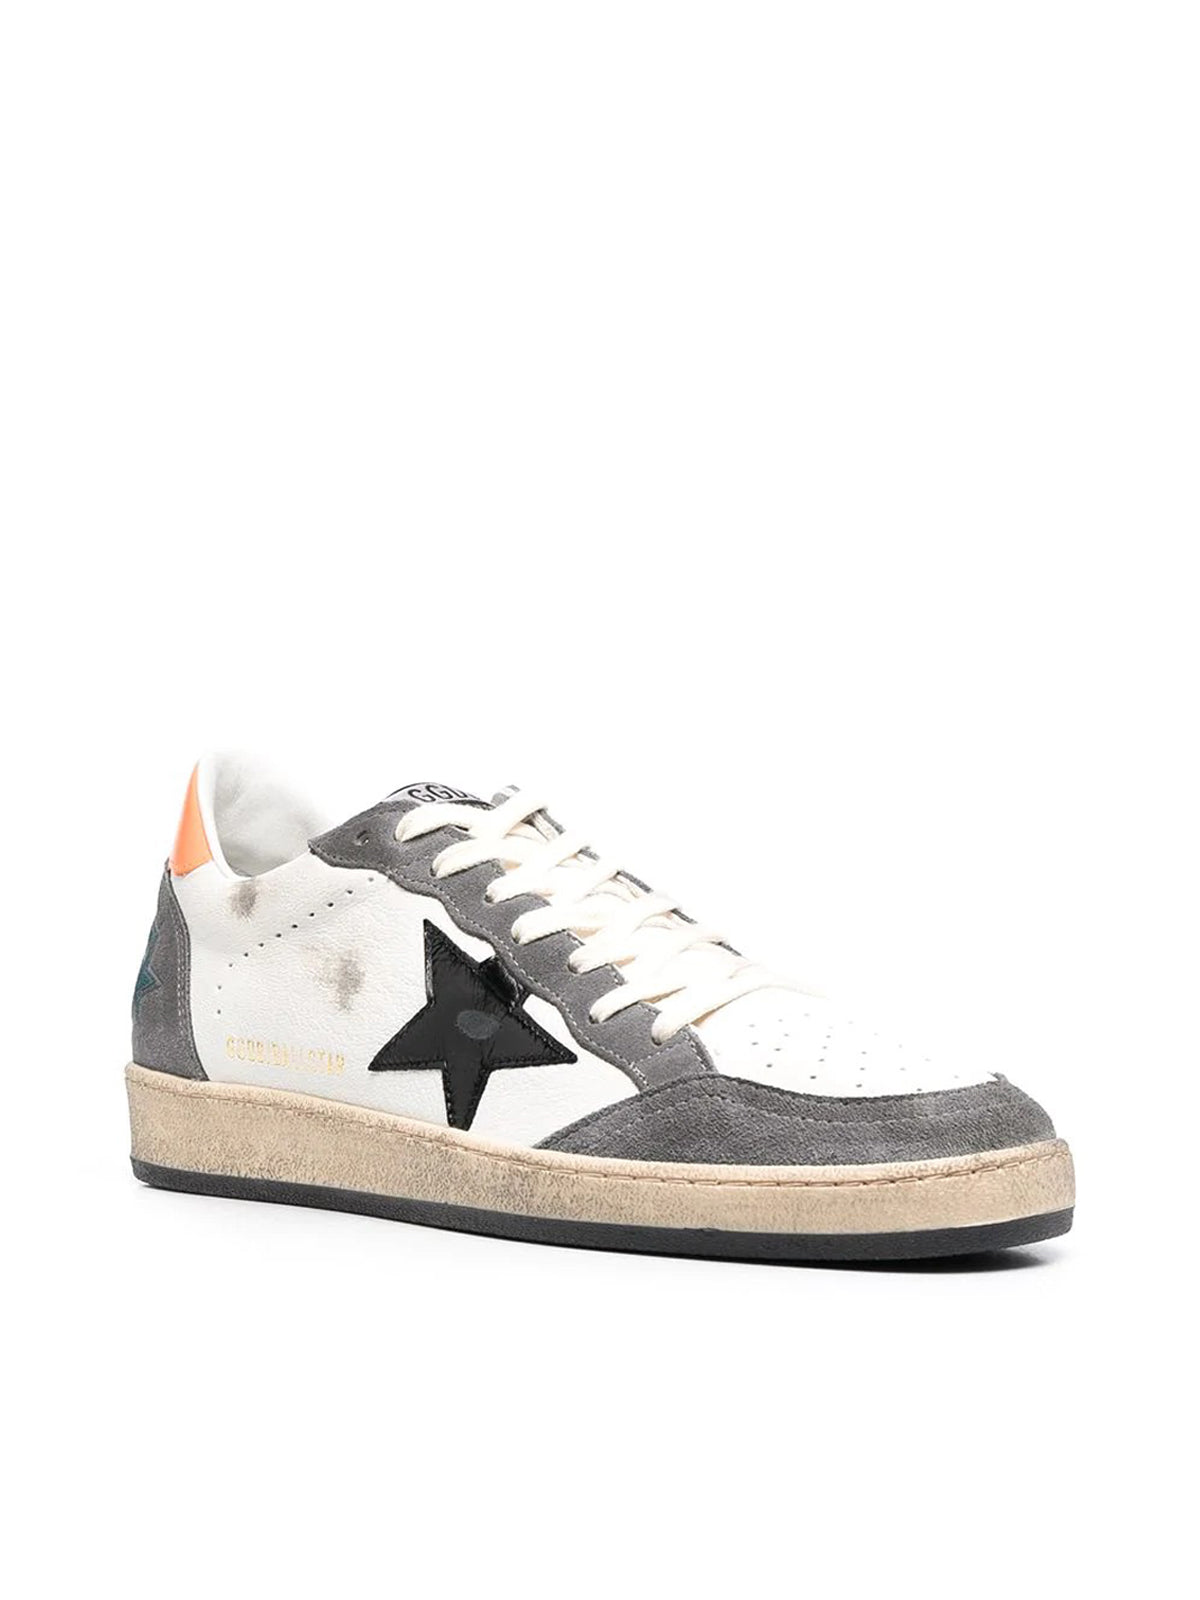 Ballstar low-top sneakers